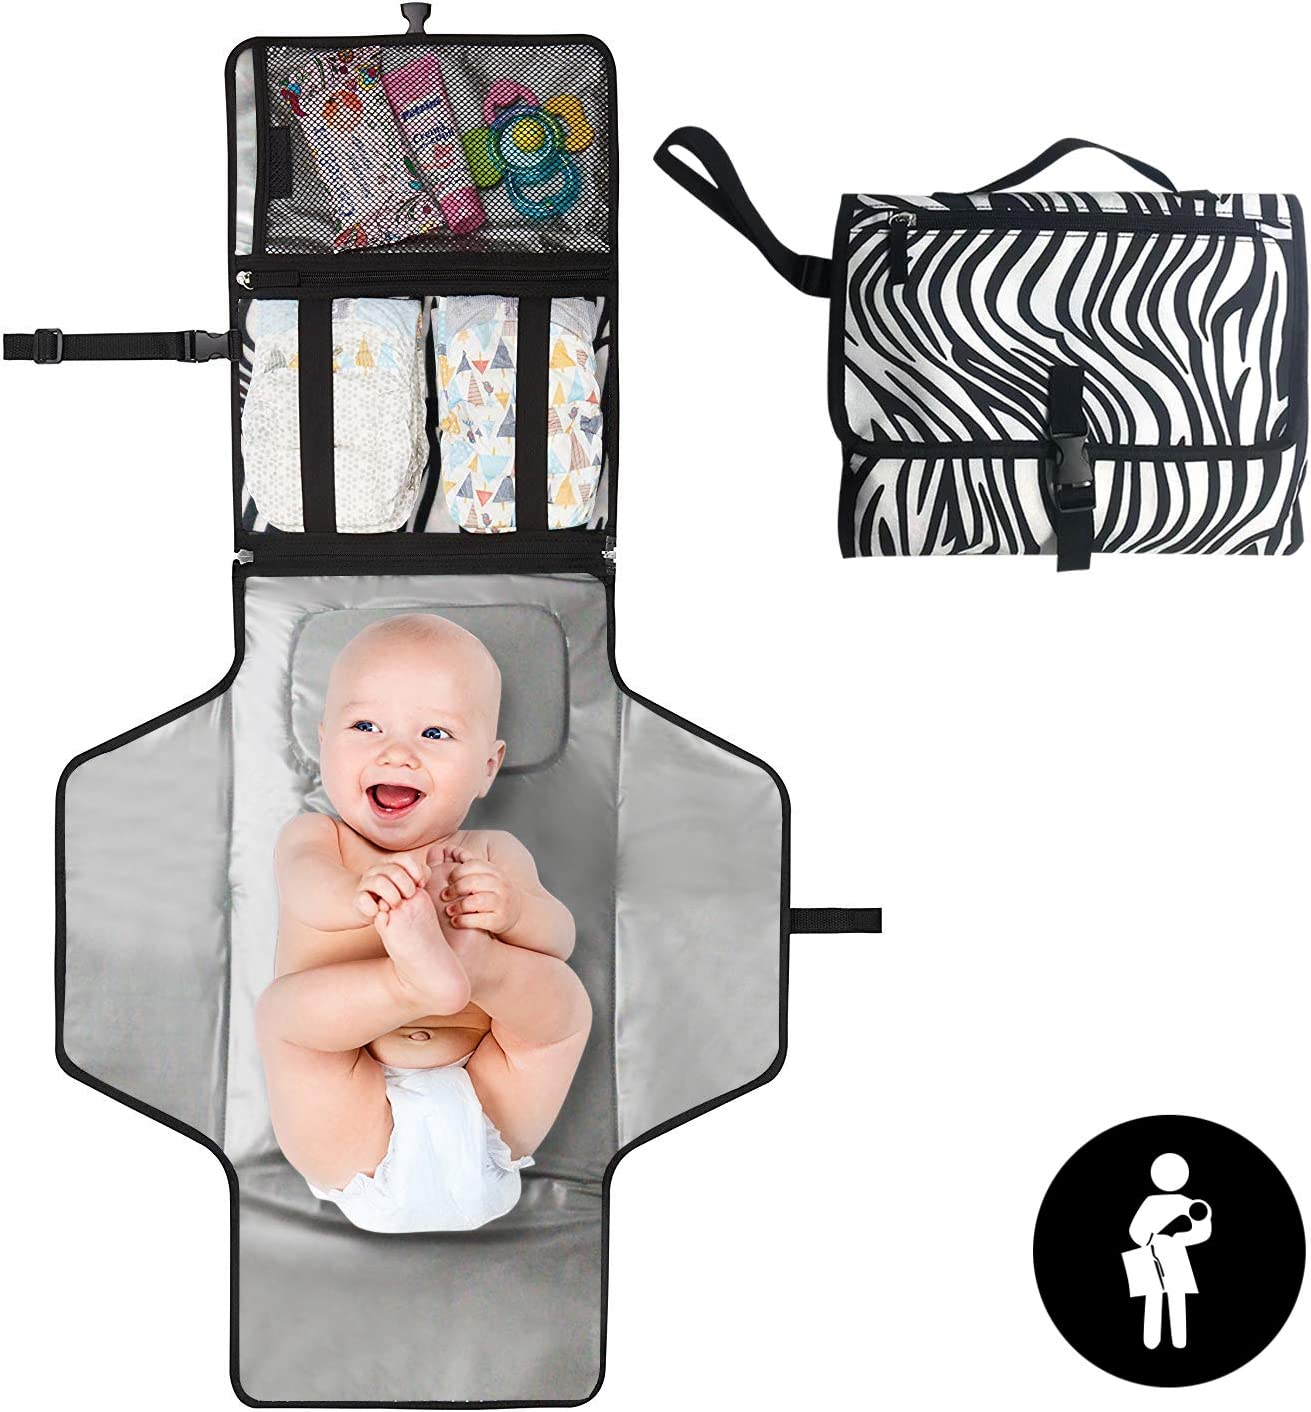 Baby Stuff for Newborn Foldable Detachable and Wipeable Outdoor Diaper Changing Pad Portable Nappy Changing Mats Waterproof Travel Changing Pad with Mesh and Zippered Pockets